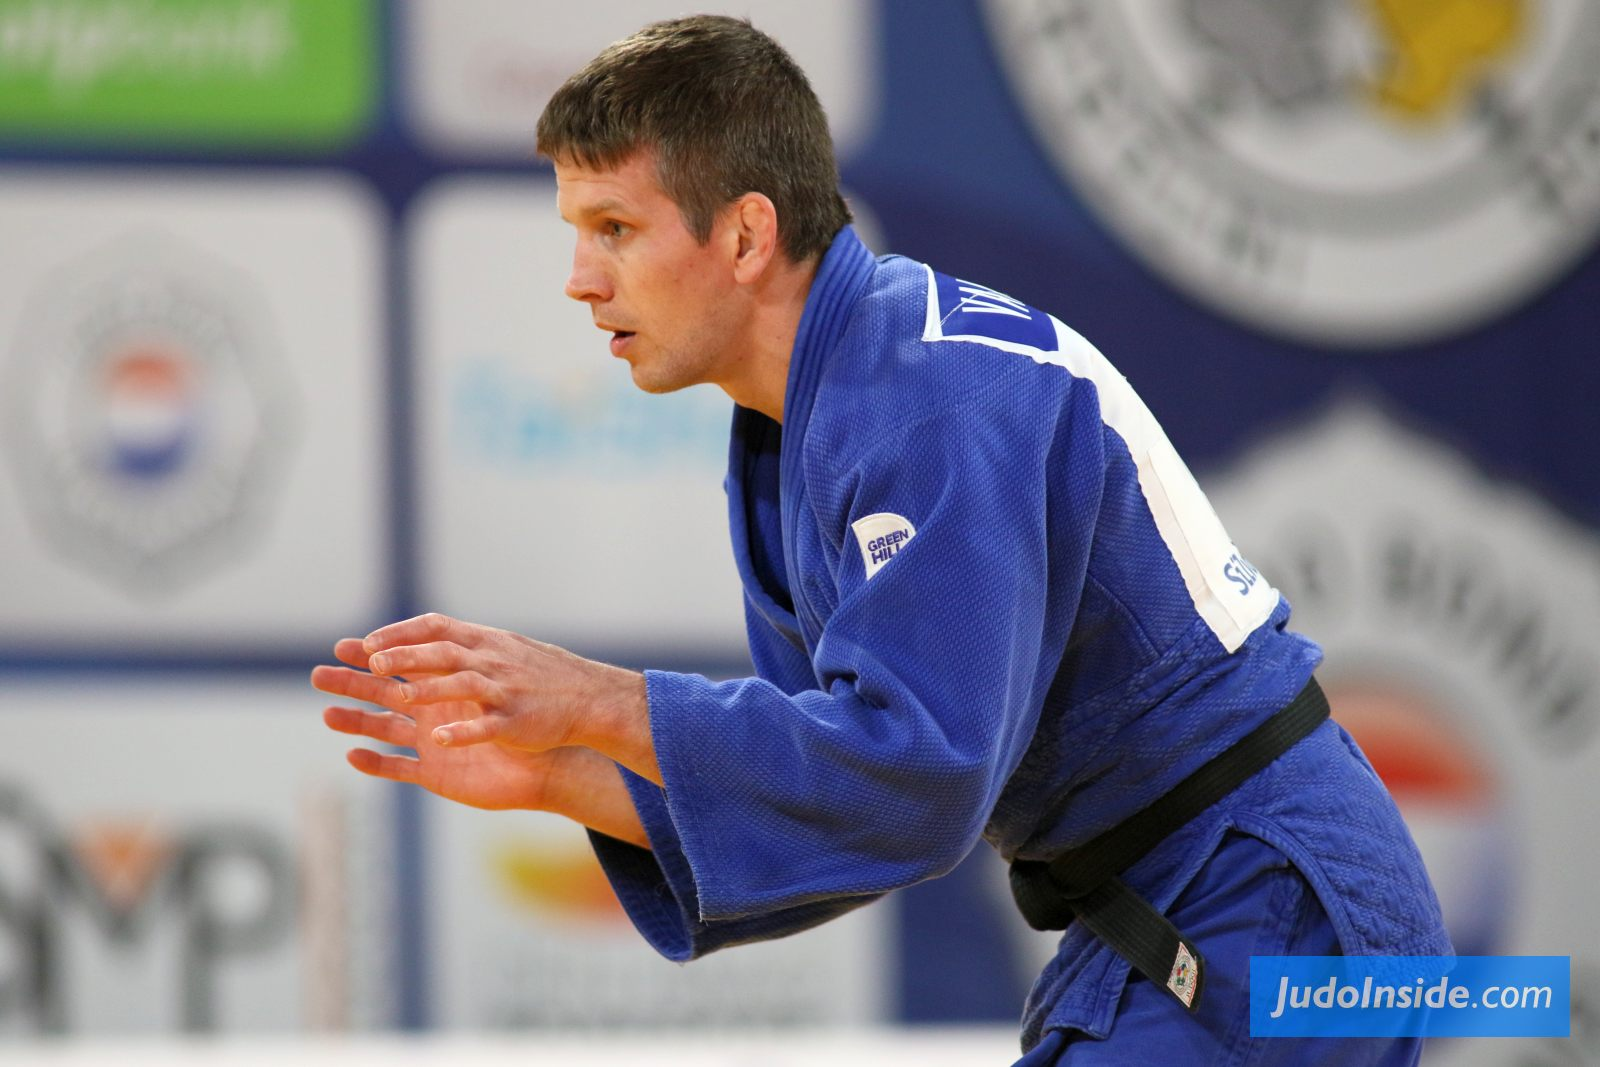 20181117_hve_gp_thehague_action_241a2538_dirk_van_tichelt